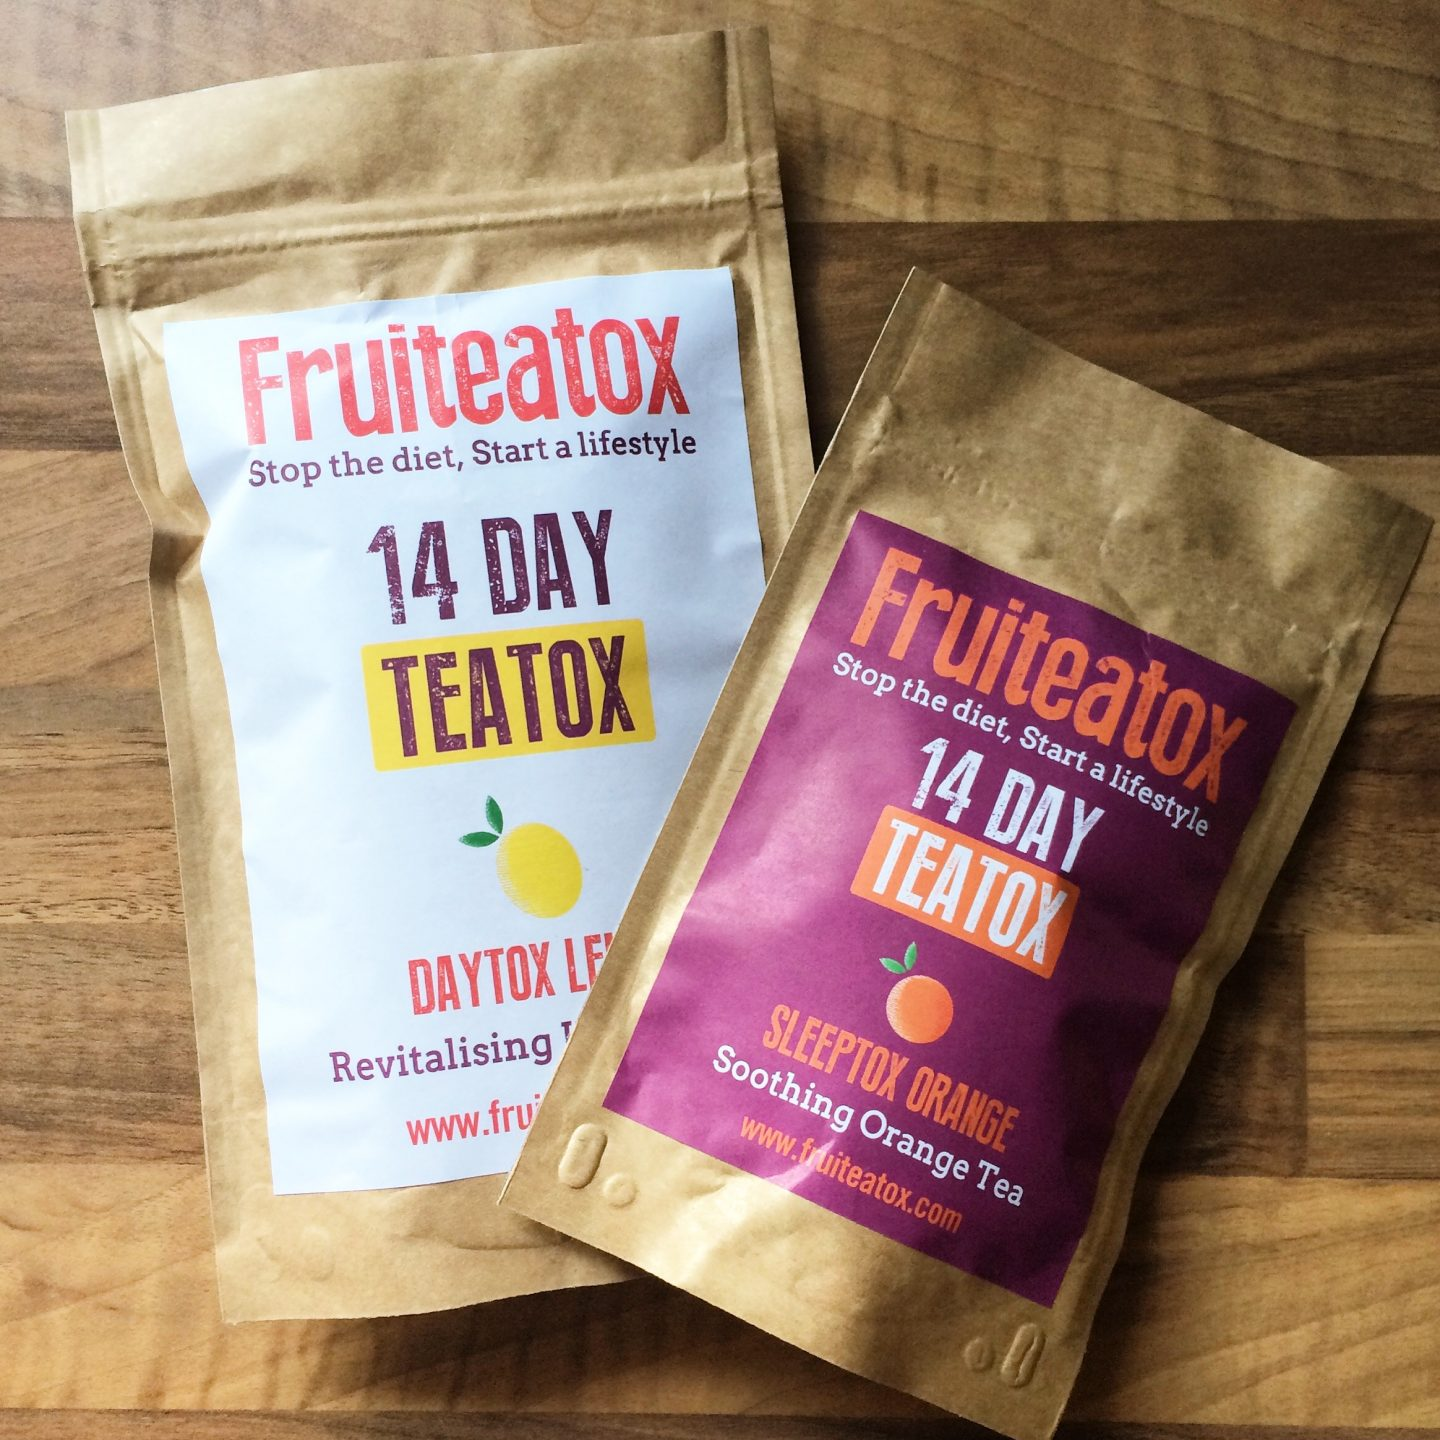 My 14 Day Teatox With Fruiteatox